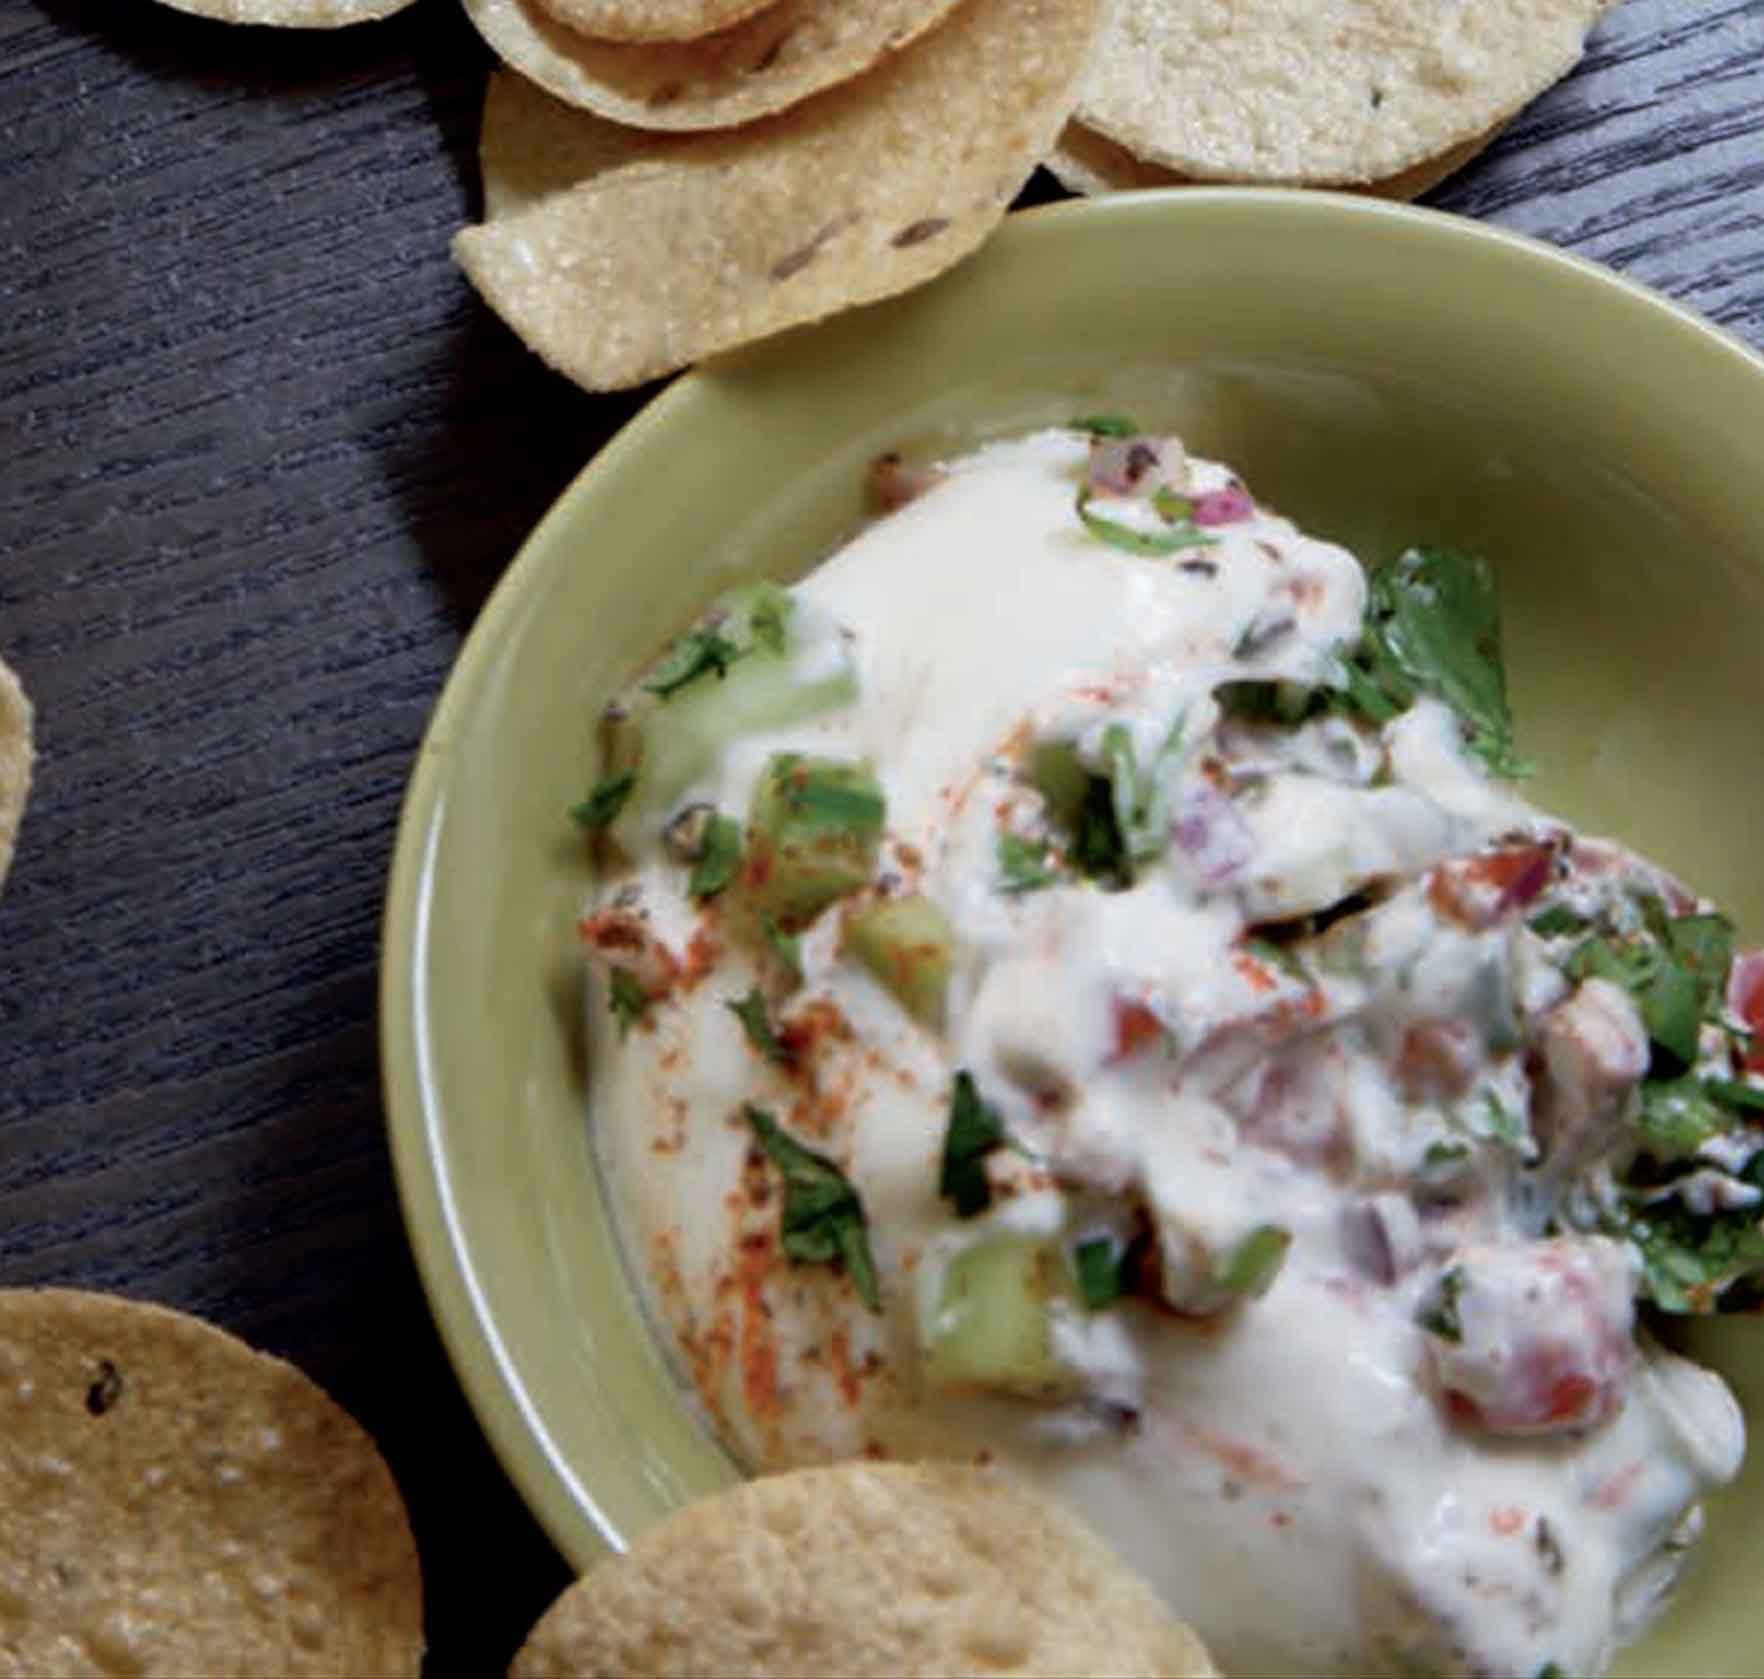 Tomato cucumber and onion raita recipe from indian food made easy tomato cucumber and onion raita recipe from indian food made easy by anjum anand forumfinder Choice Image